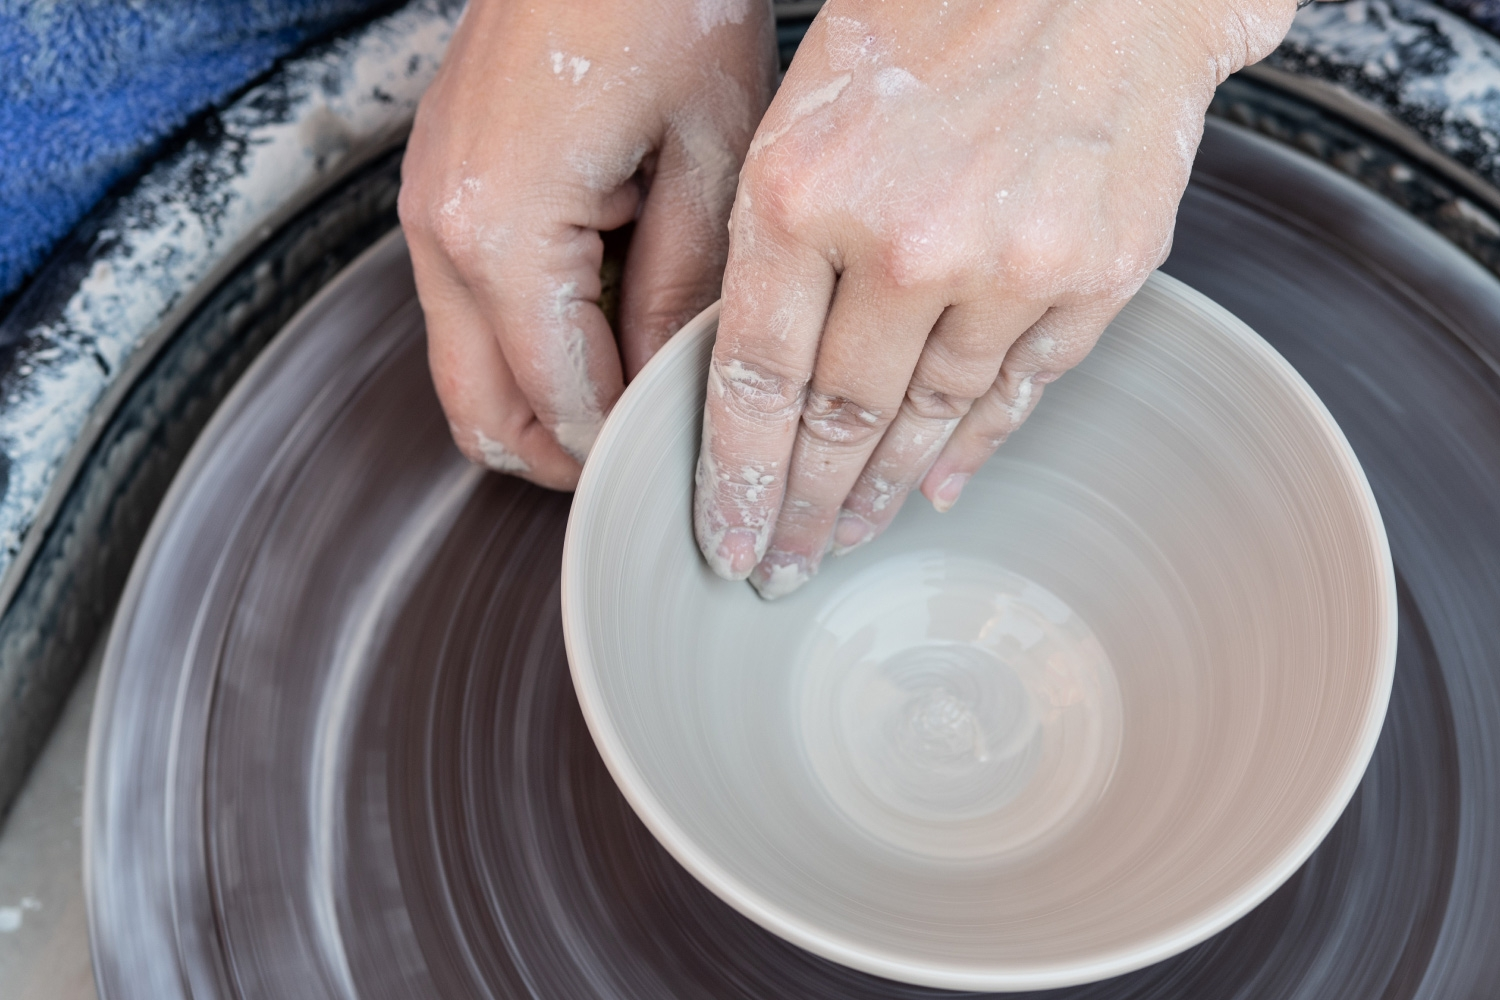 Going global with ceramic art